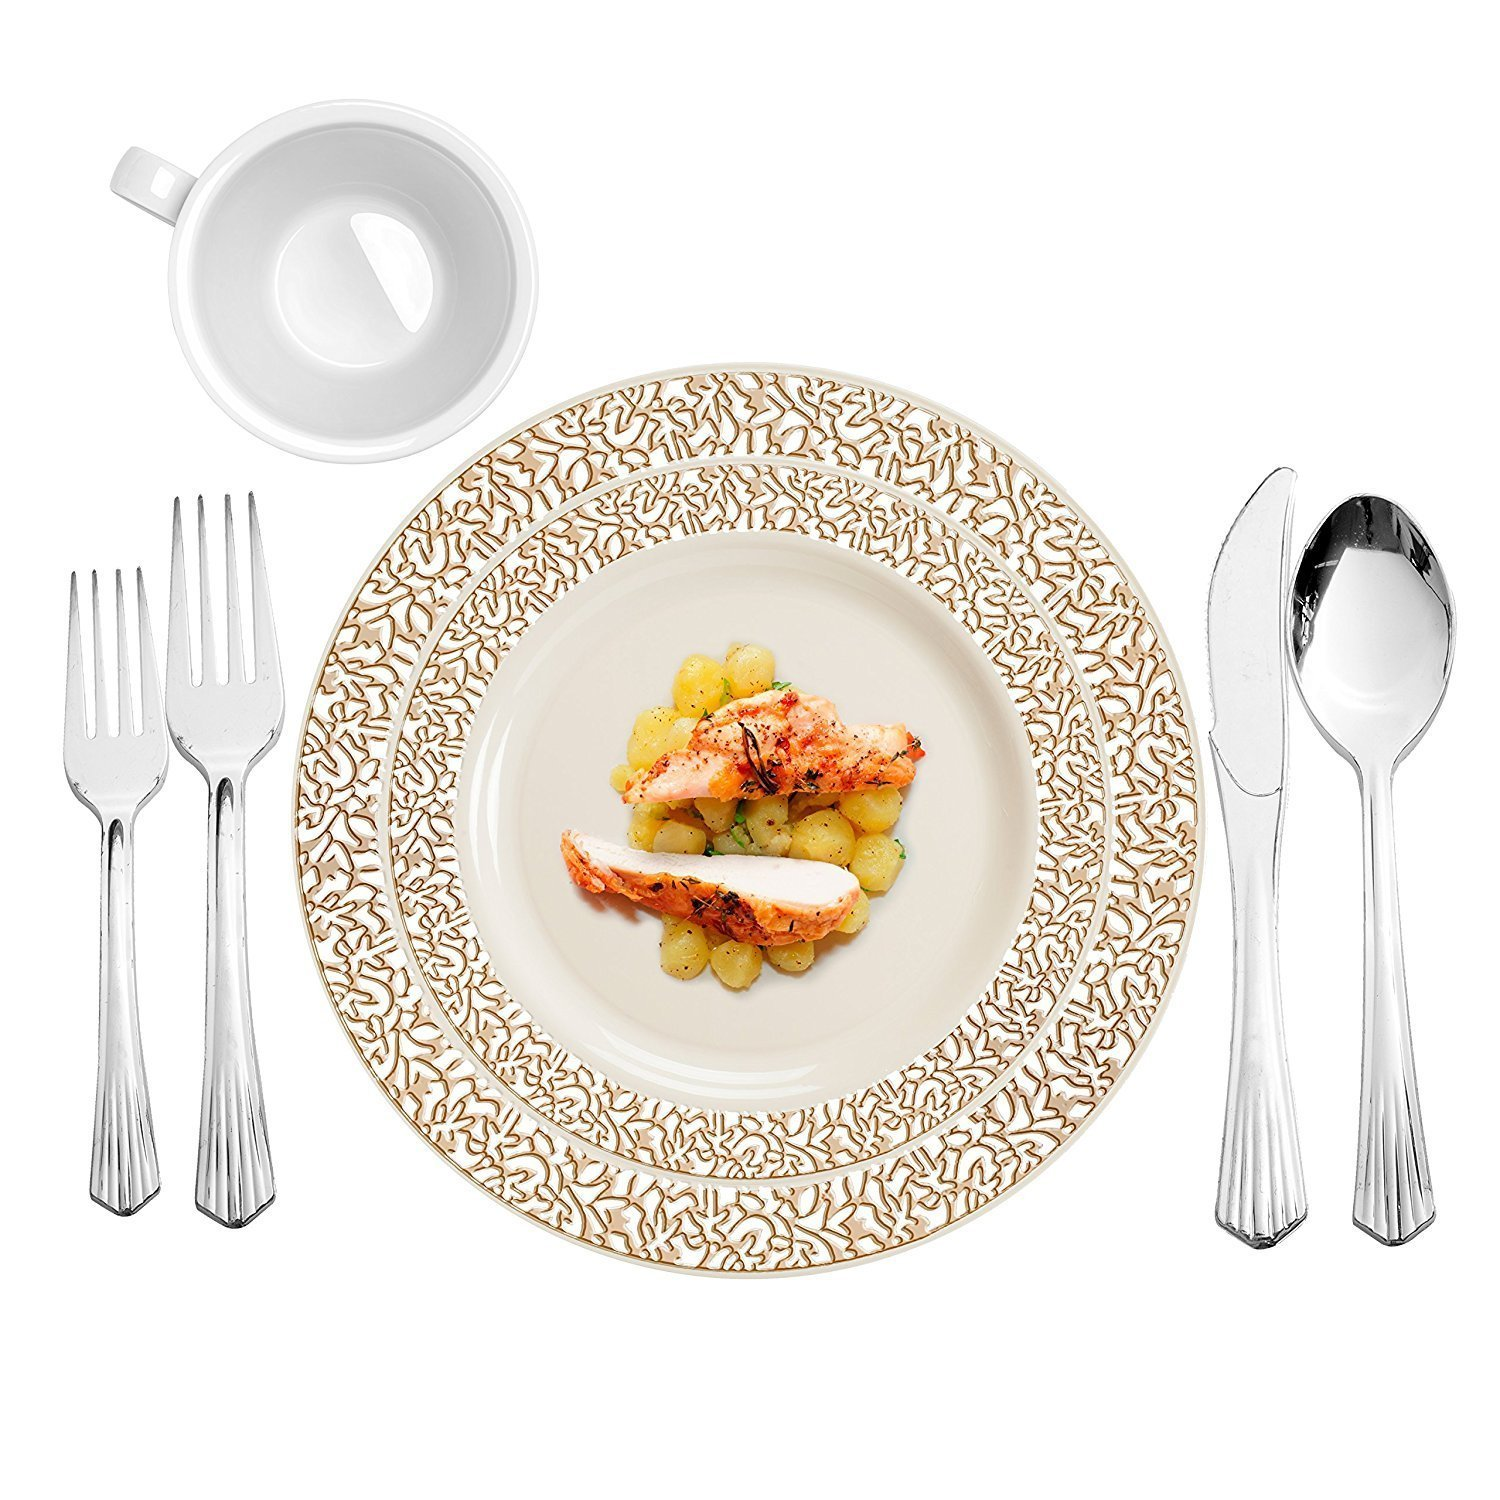 Party Bargains Ivory Gold 240 Round Plastic Plates & 480 Upscale Collection Cutlery | Lace Collection China Like Gold border Plate and Elegant Silverware - 720 Pcs | Combo Pack for 120 People